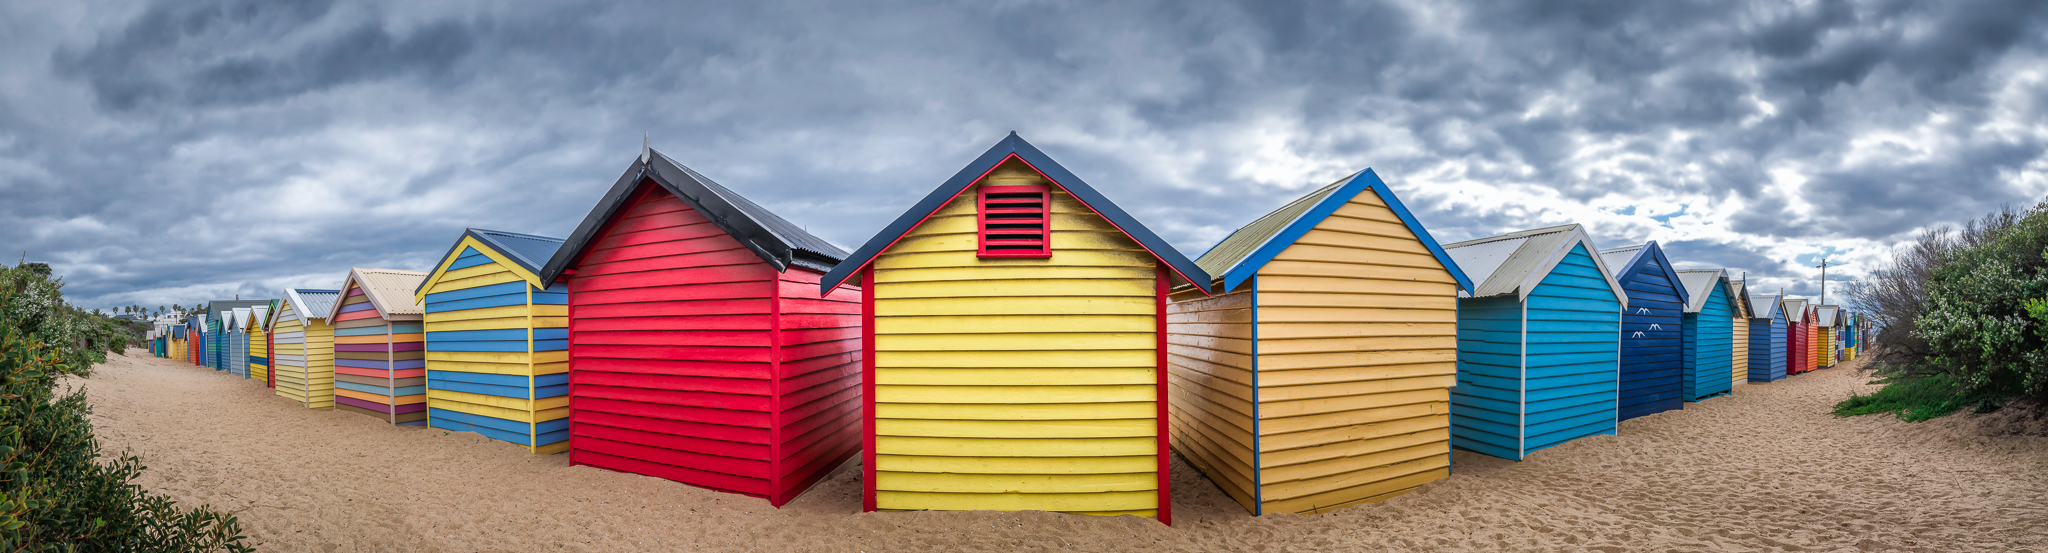 Brighton Beach Bathing Boxes (Victoria, Australia) - Photo by Paul Tadday